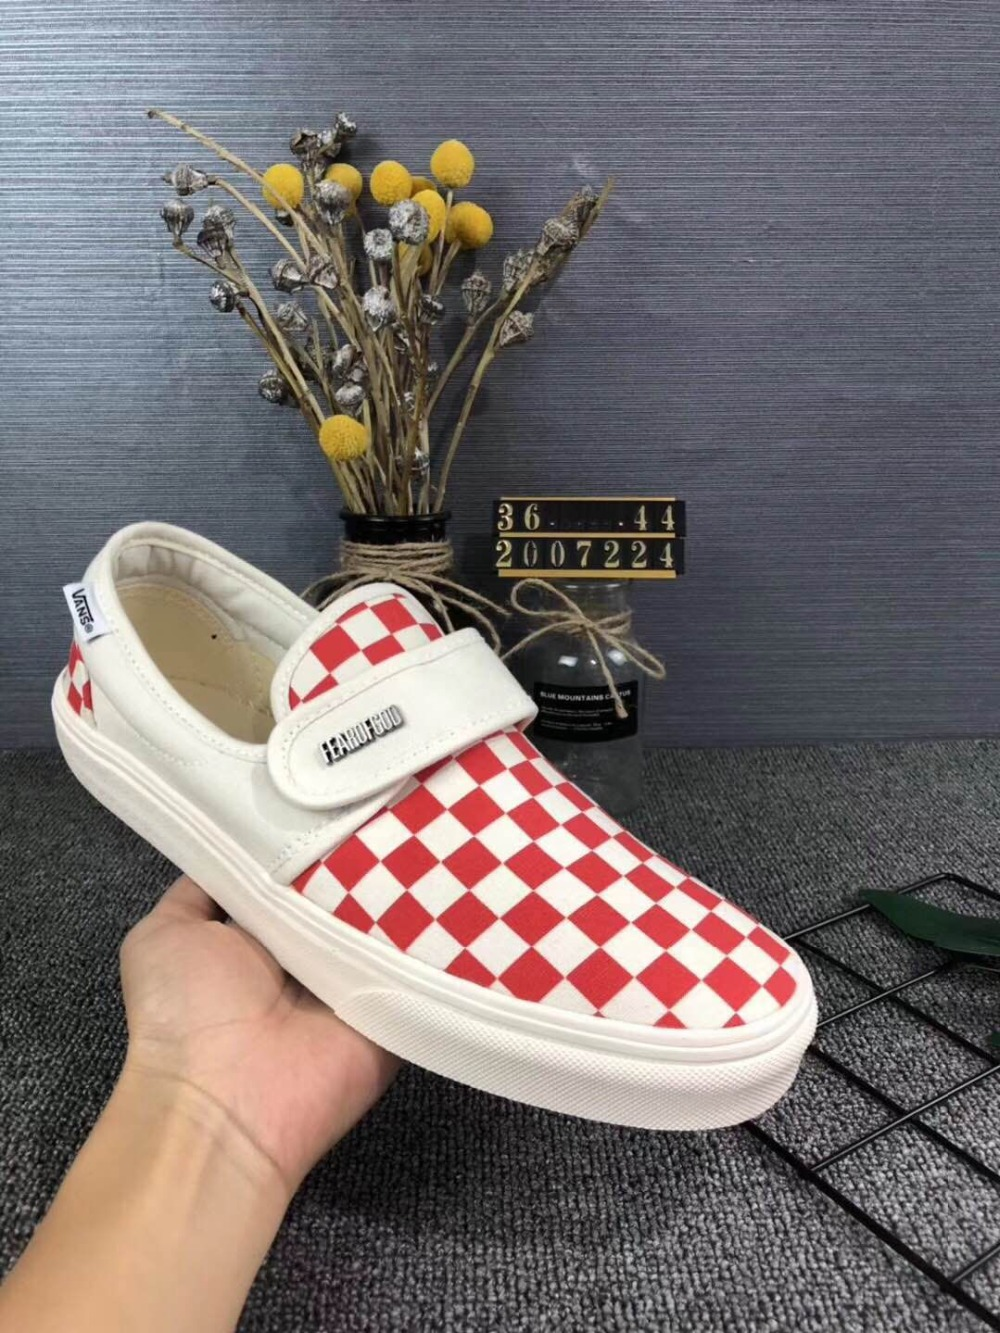 1d60f1b9bf1c Vans Slip-On 47 DX Classic Men and Womens white red grid Sneakers canvas  shoes